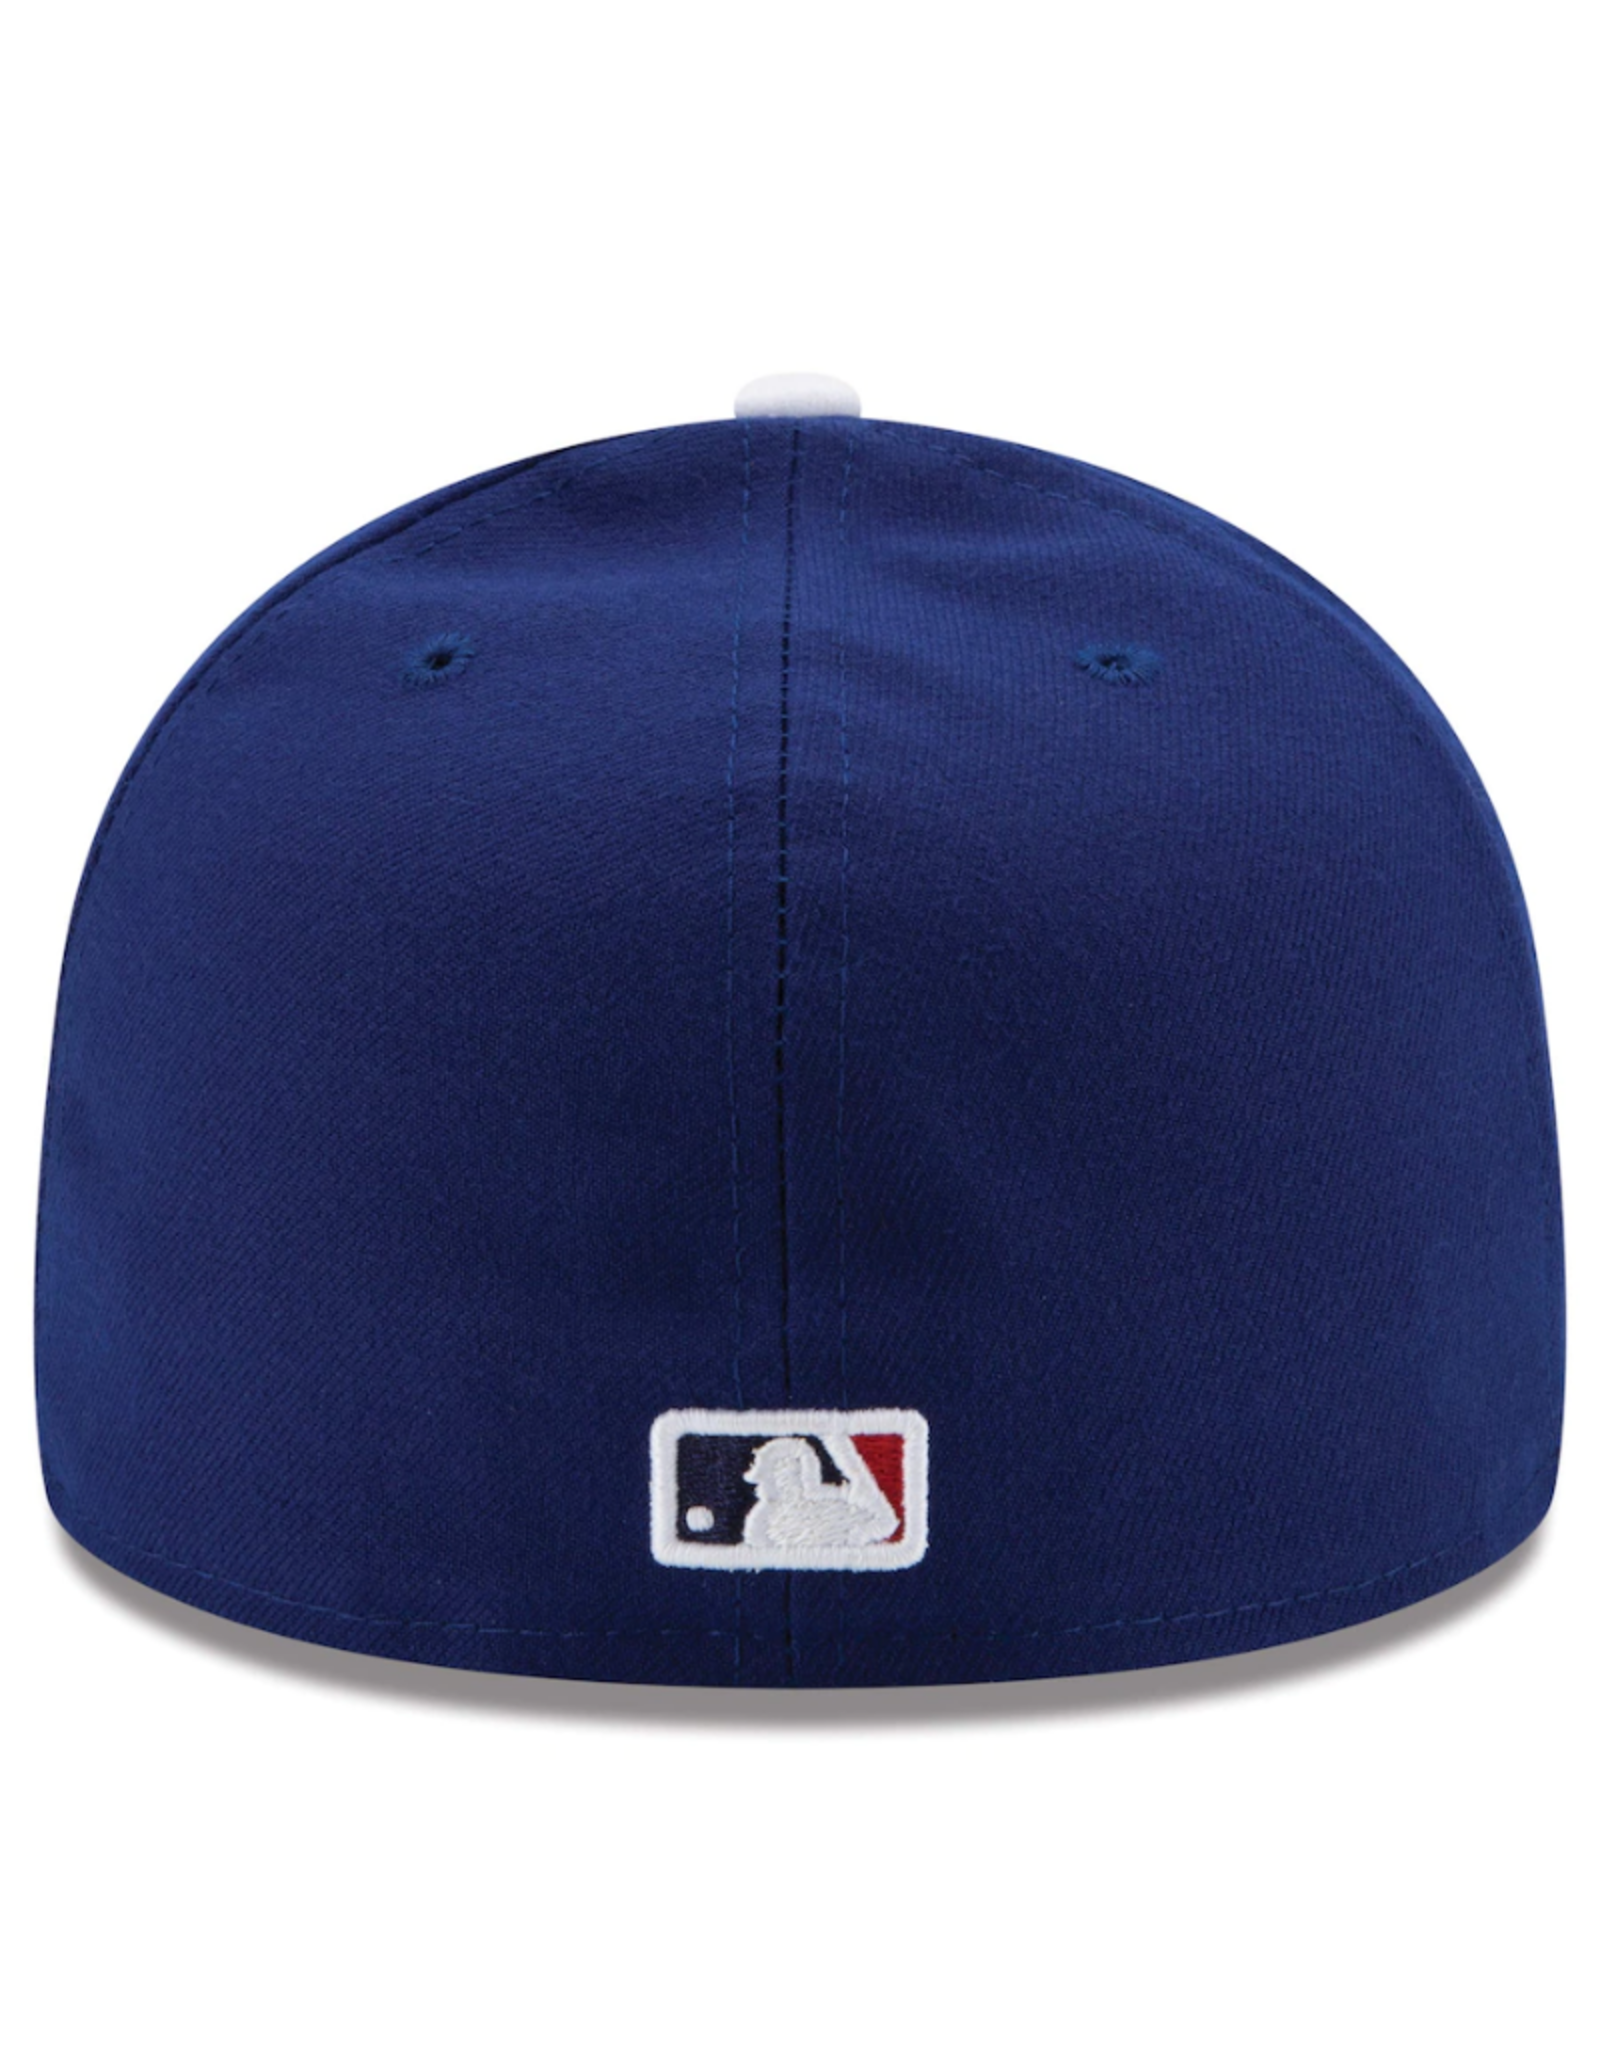 New Era On-Field Home Los Angeles Dodgers Blue